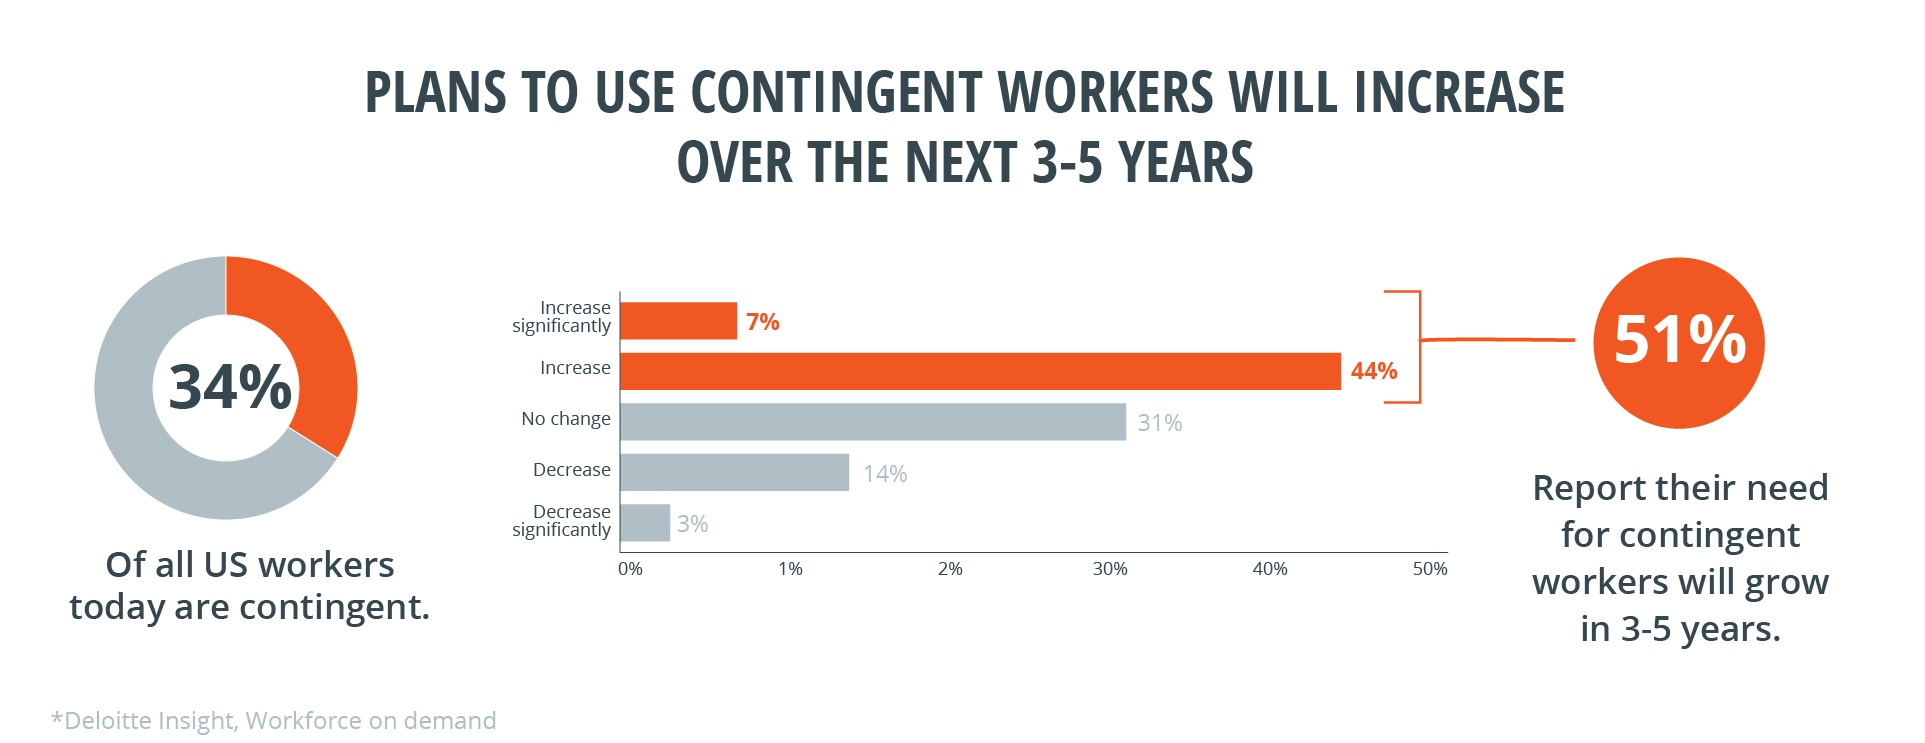 Plans to use contingent workers will increase over the next 3-5 years.